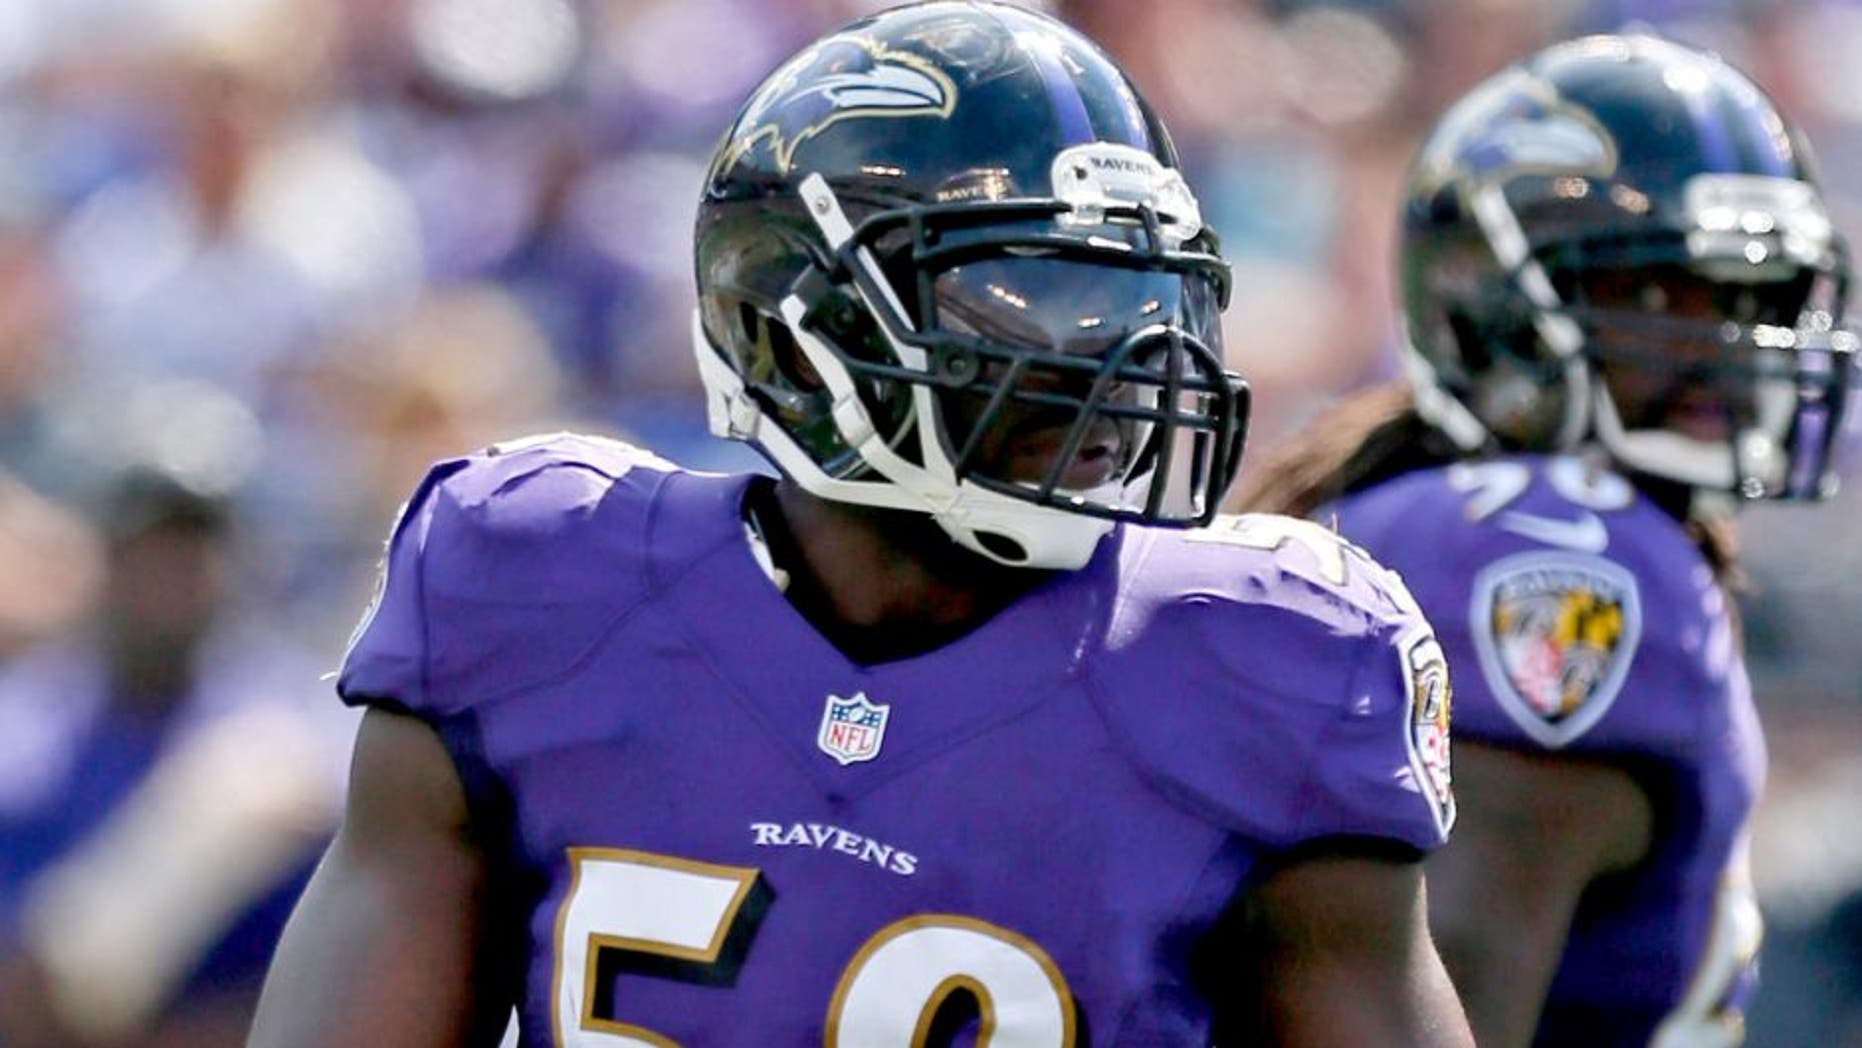 Sep 15, 2013; Baltimore, MD, USA; Baltimore Ravens linebacker Elvis Dumervil (58) during the game against the Cleveland Browns at M&T Bank Stadium. Mandatory Credit: Mitch Stringer-USA TODAY Sports